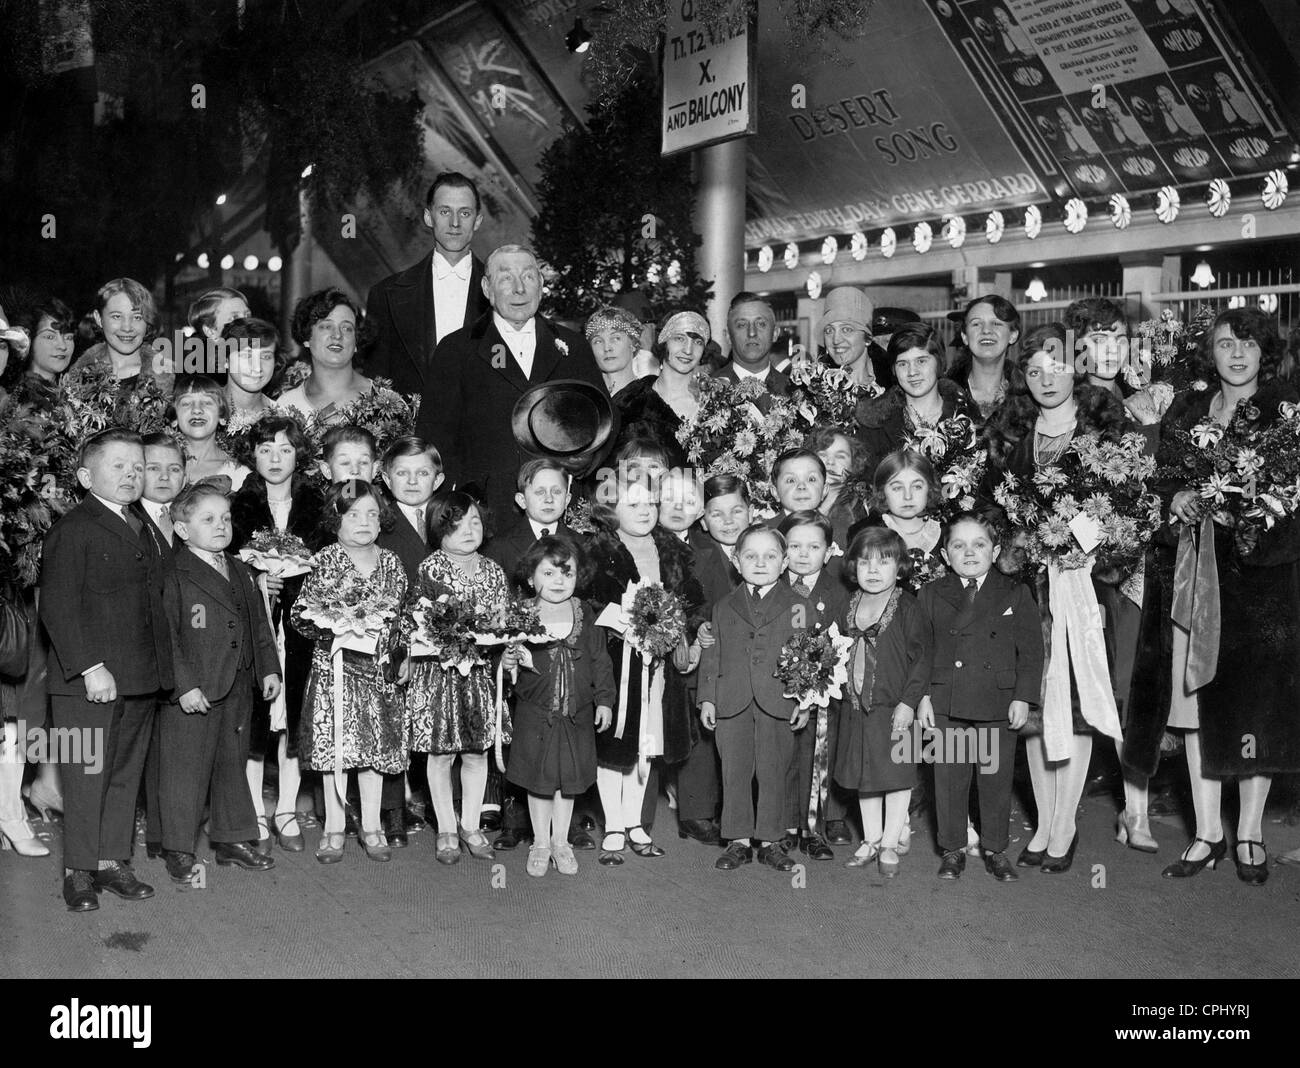 Lord Lonsdale and runtish circus people - Stock Image